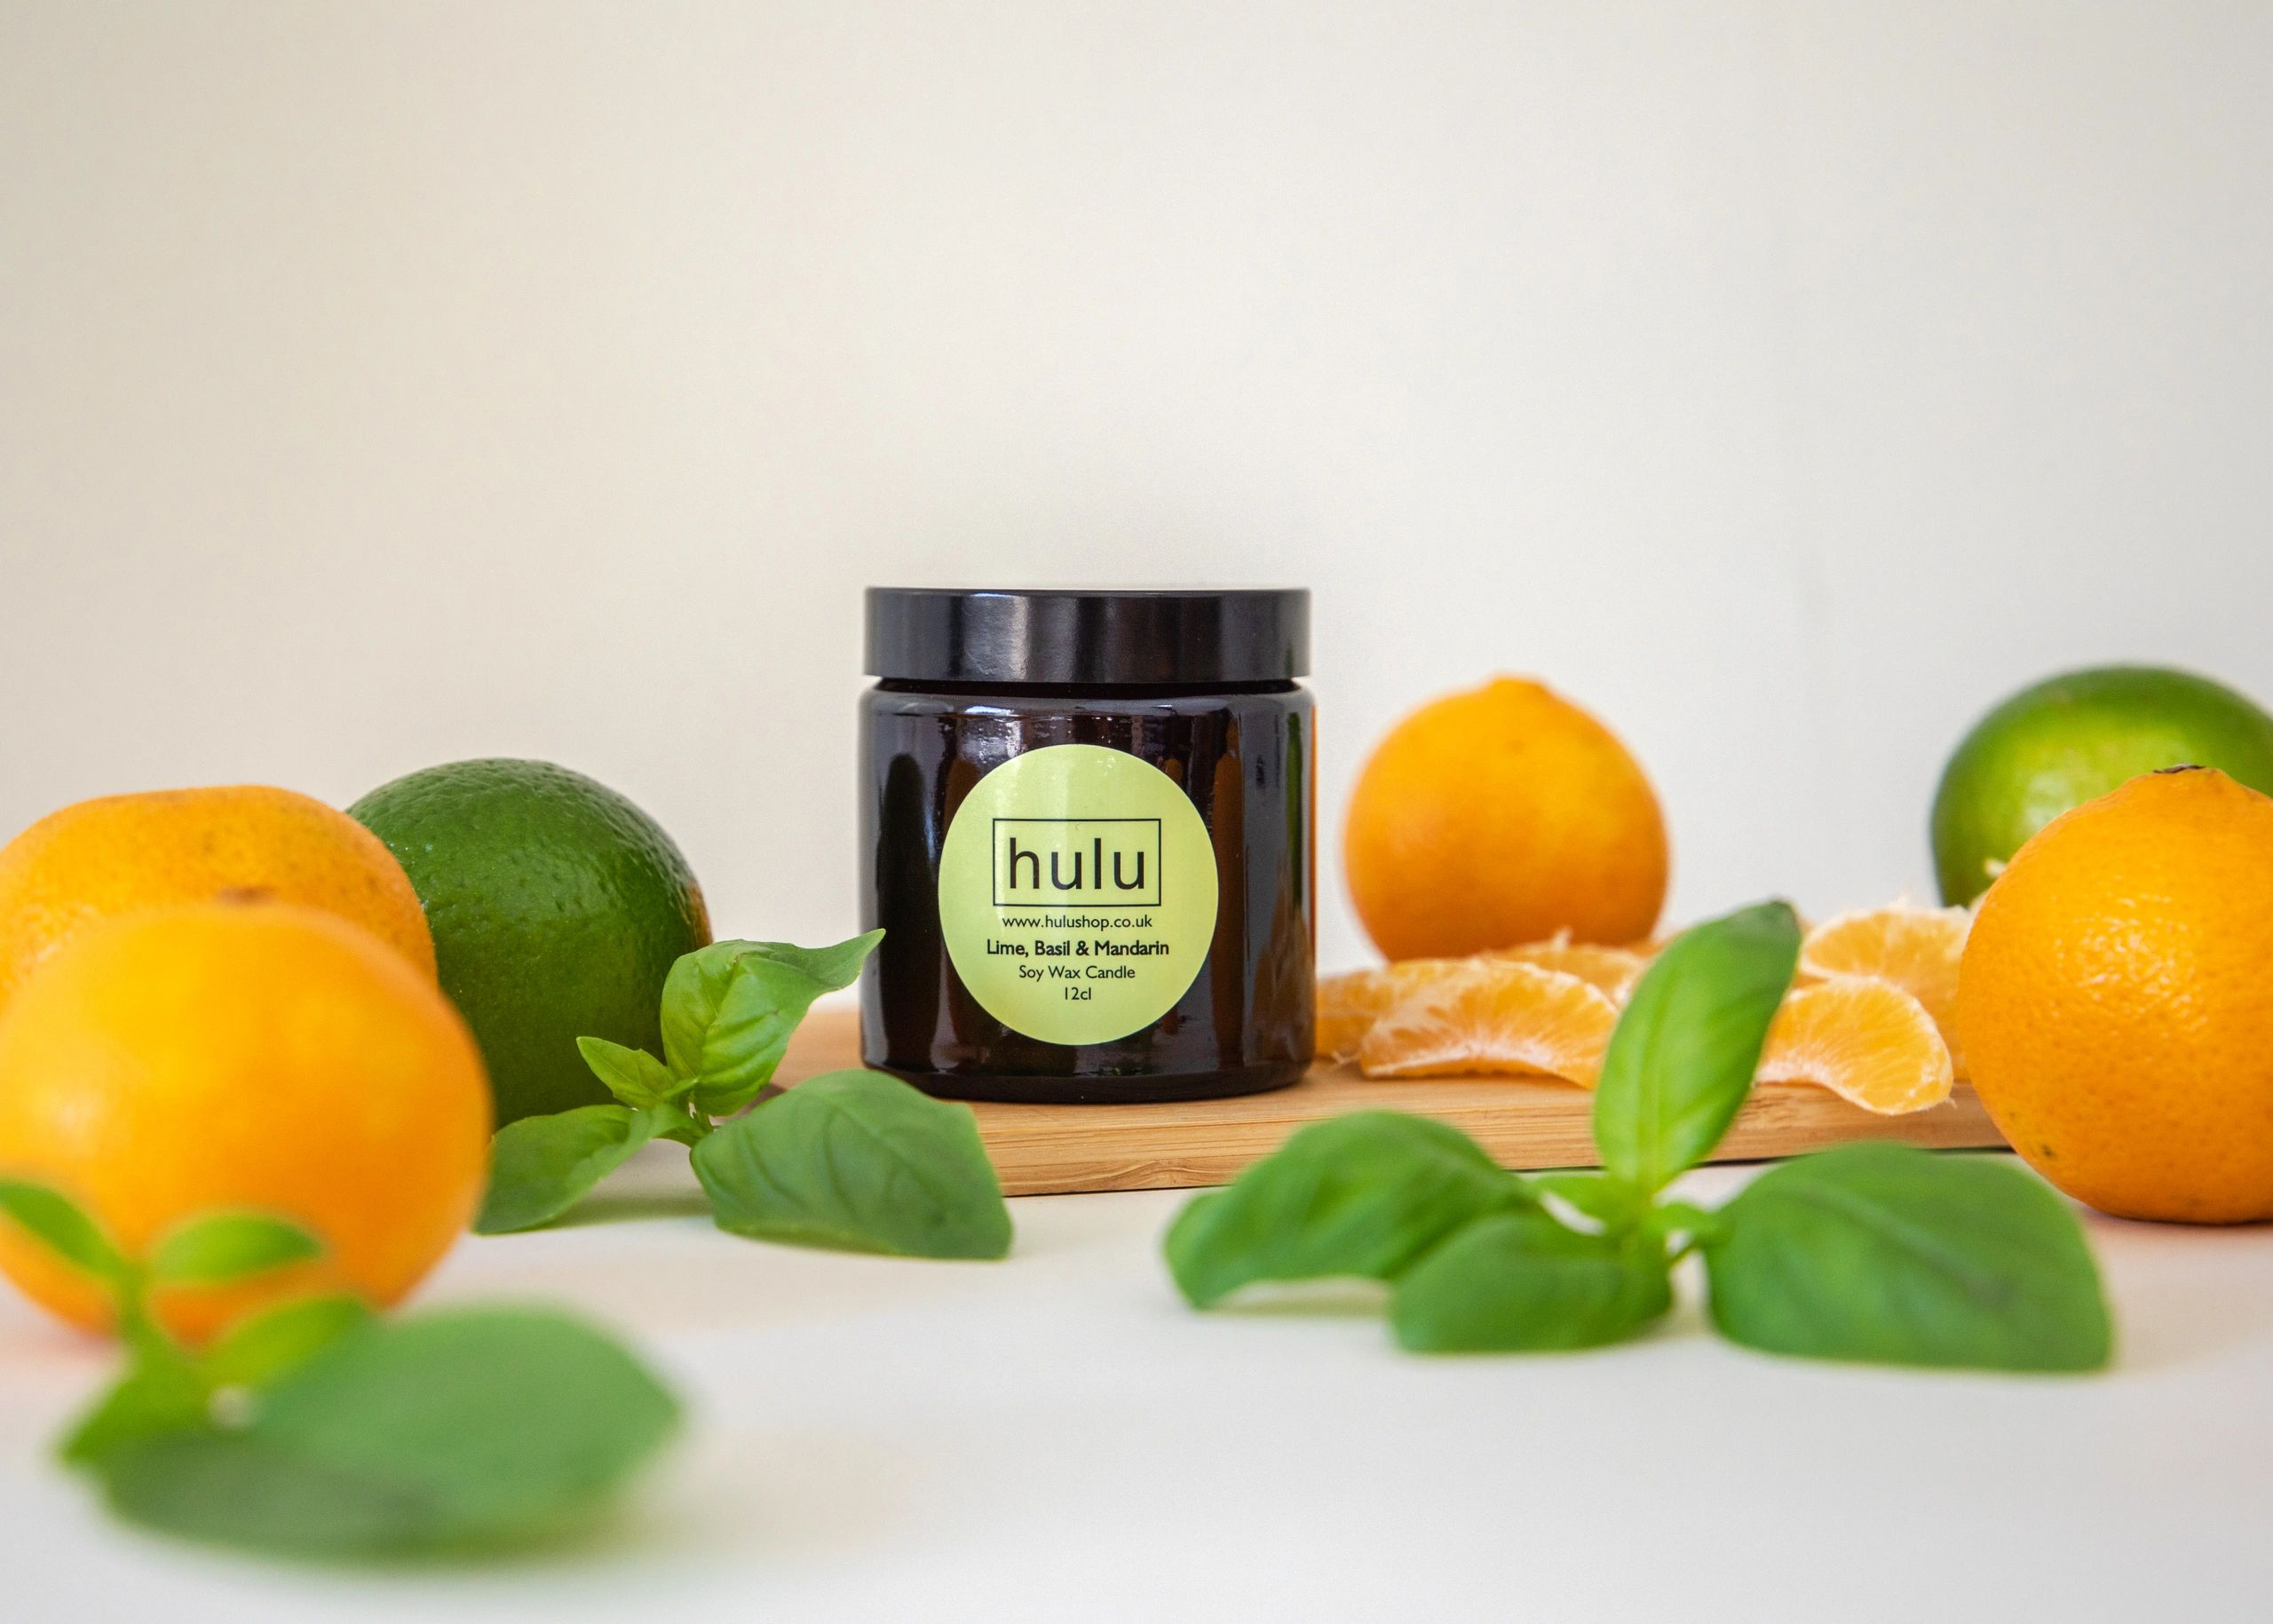 One of the Hulu range of uplifting, citrus, soy scented candles.